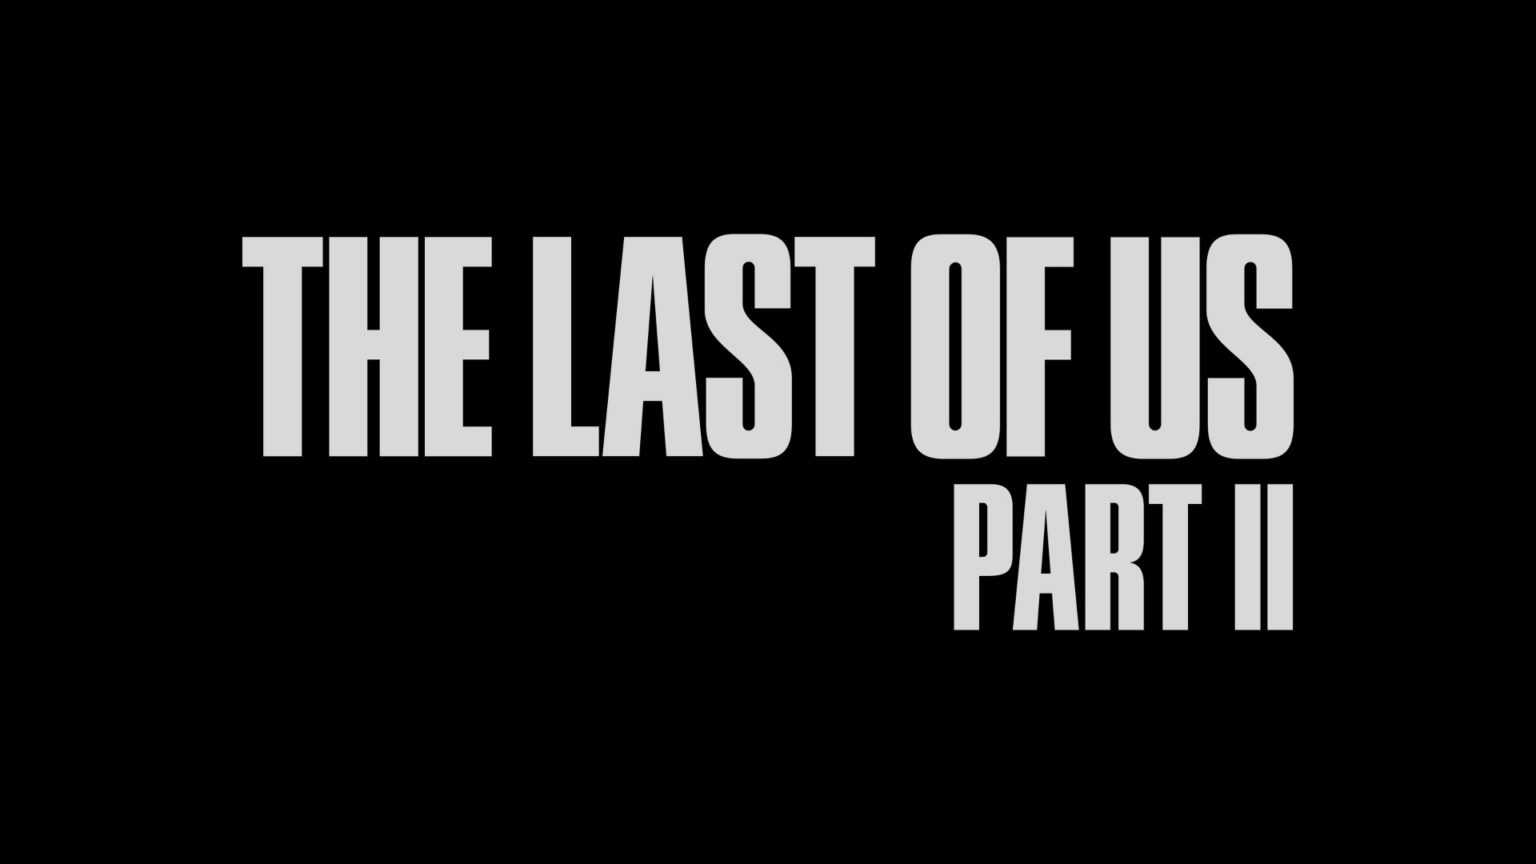 The Last of Us Part IIラストオブアス2評価感想レビュー考察